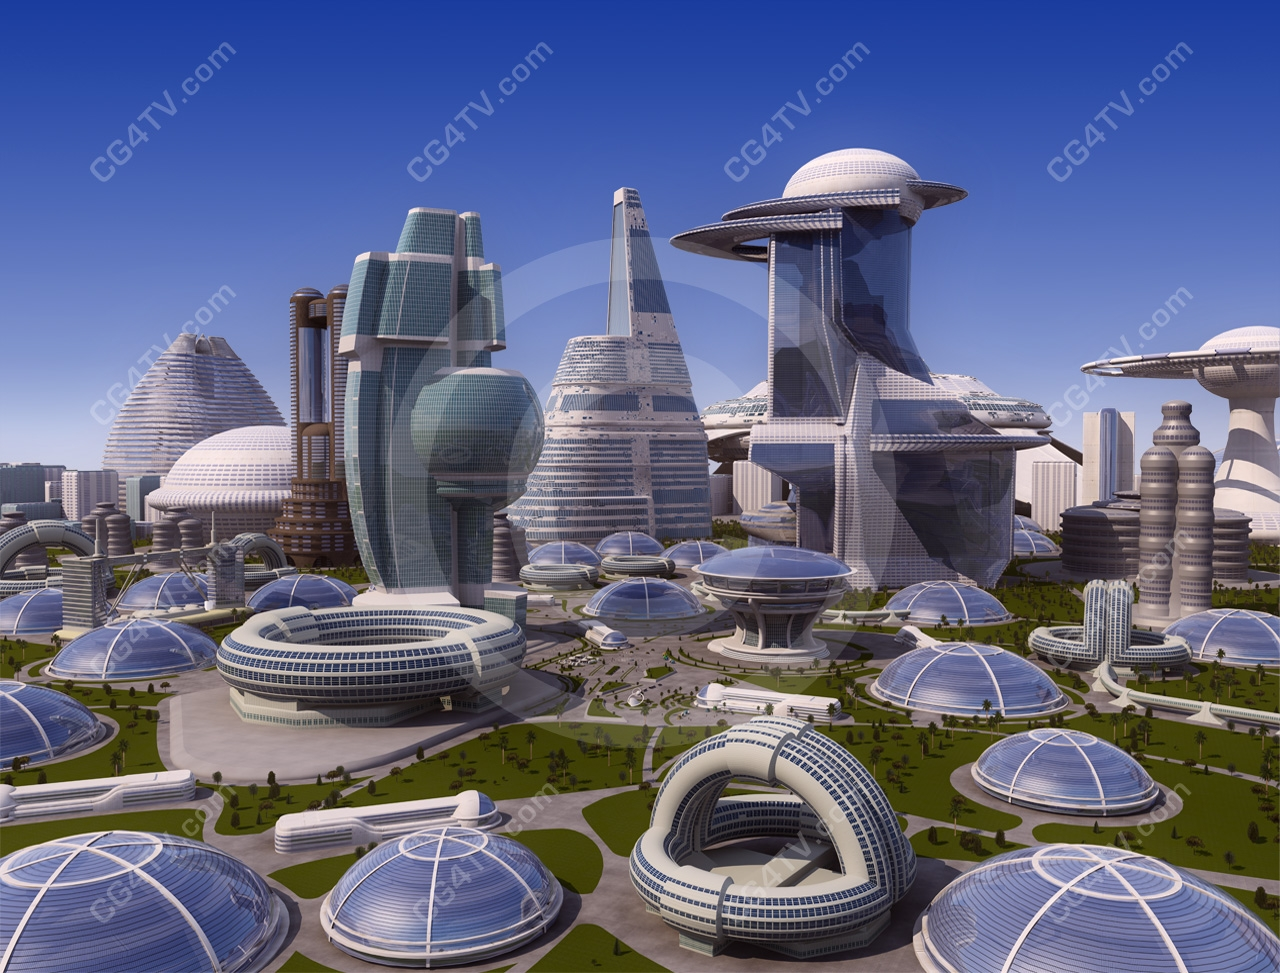 Future City Picture moreover Hif 1 Alpha Cellular Assay Kit also How To Get Product Key Of Bundled Office Premium likewise Heritage Toffee 200g P000000000003450445 further Euphorbia Amygdaloides Purpurea 0003774c. on product key